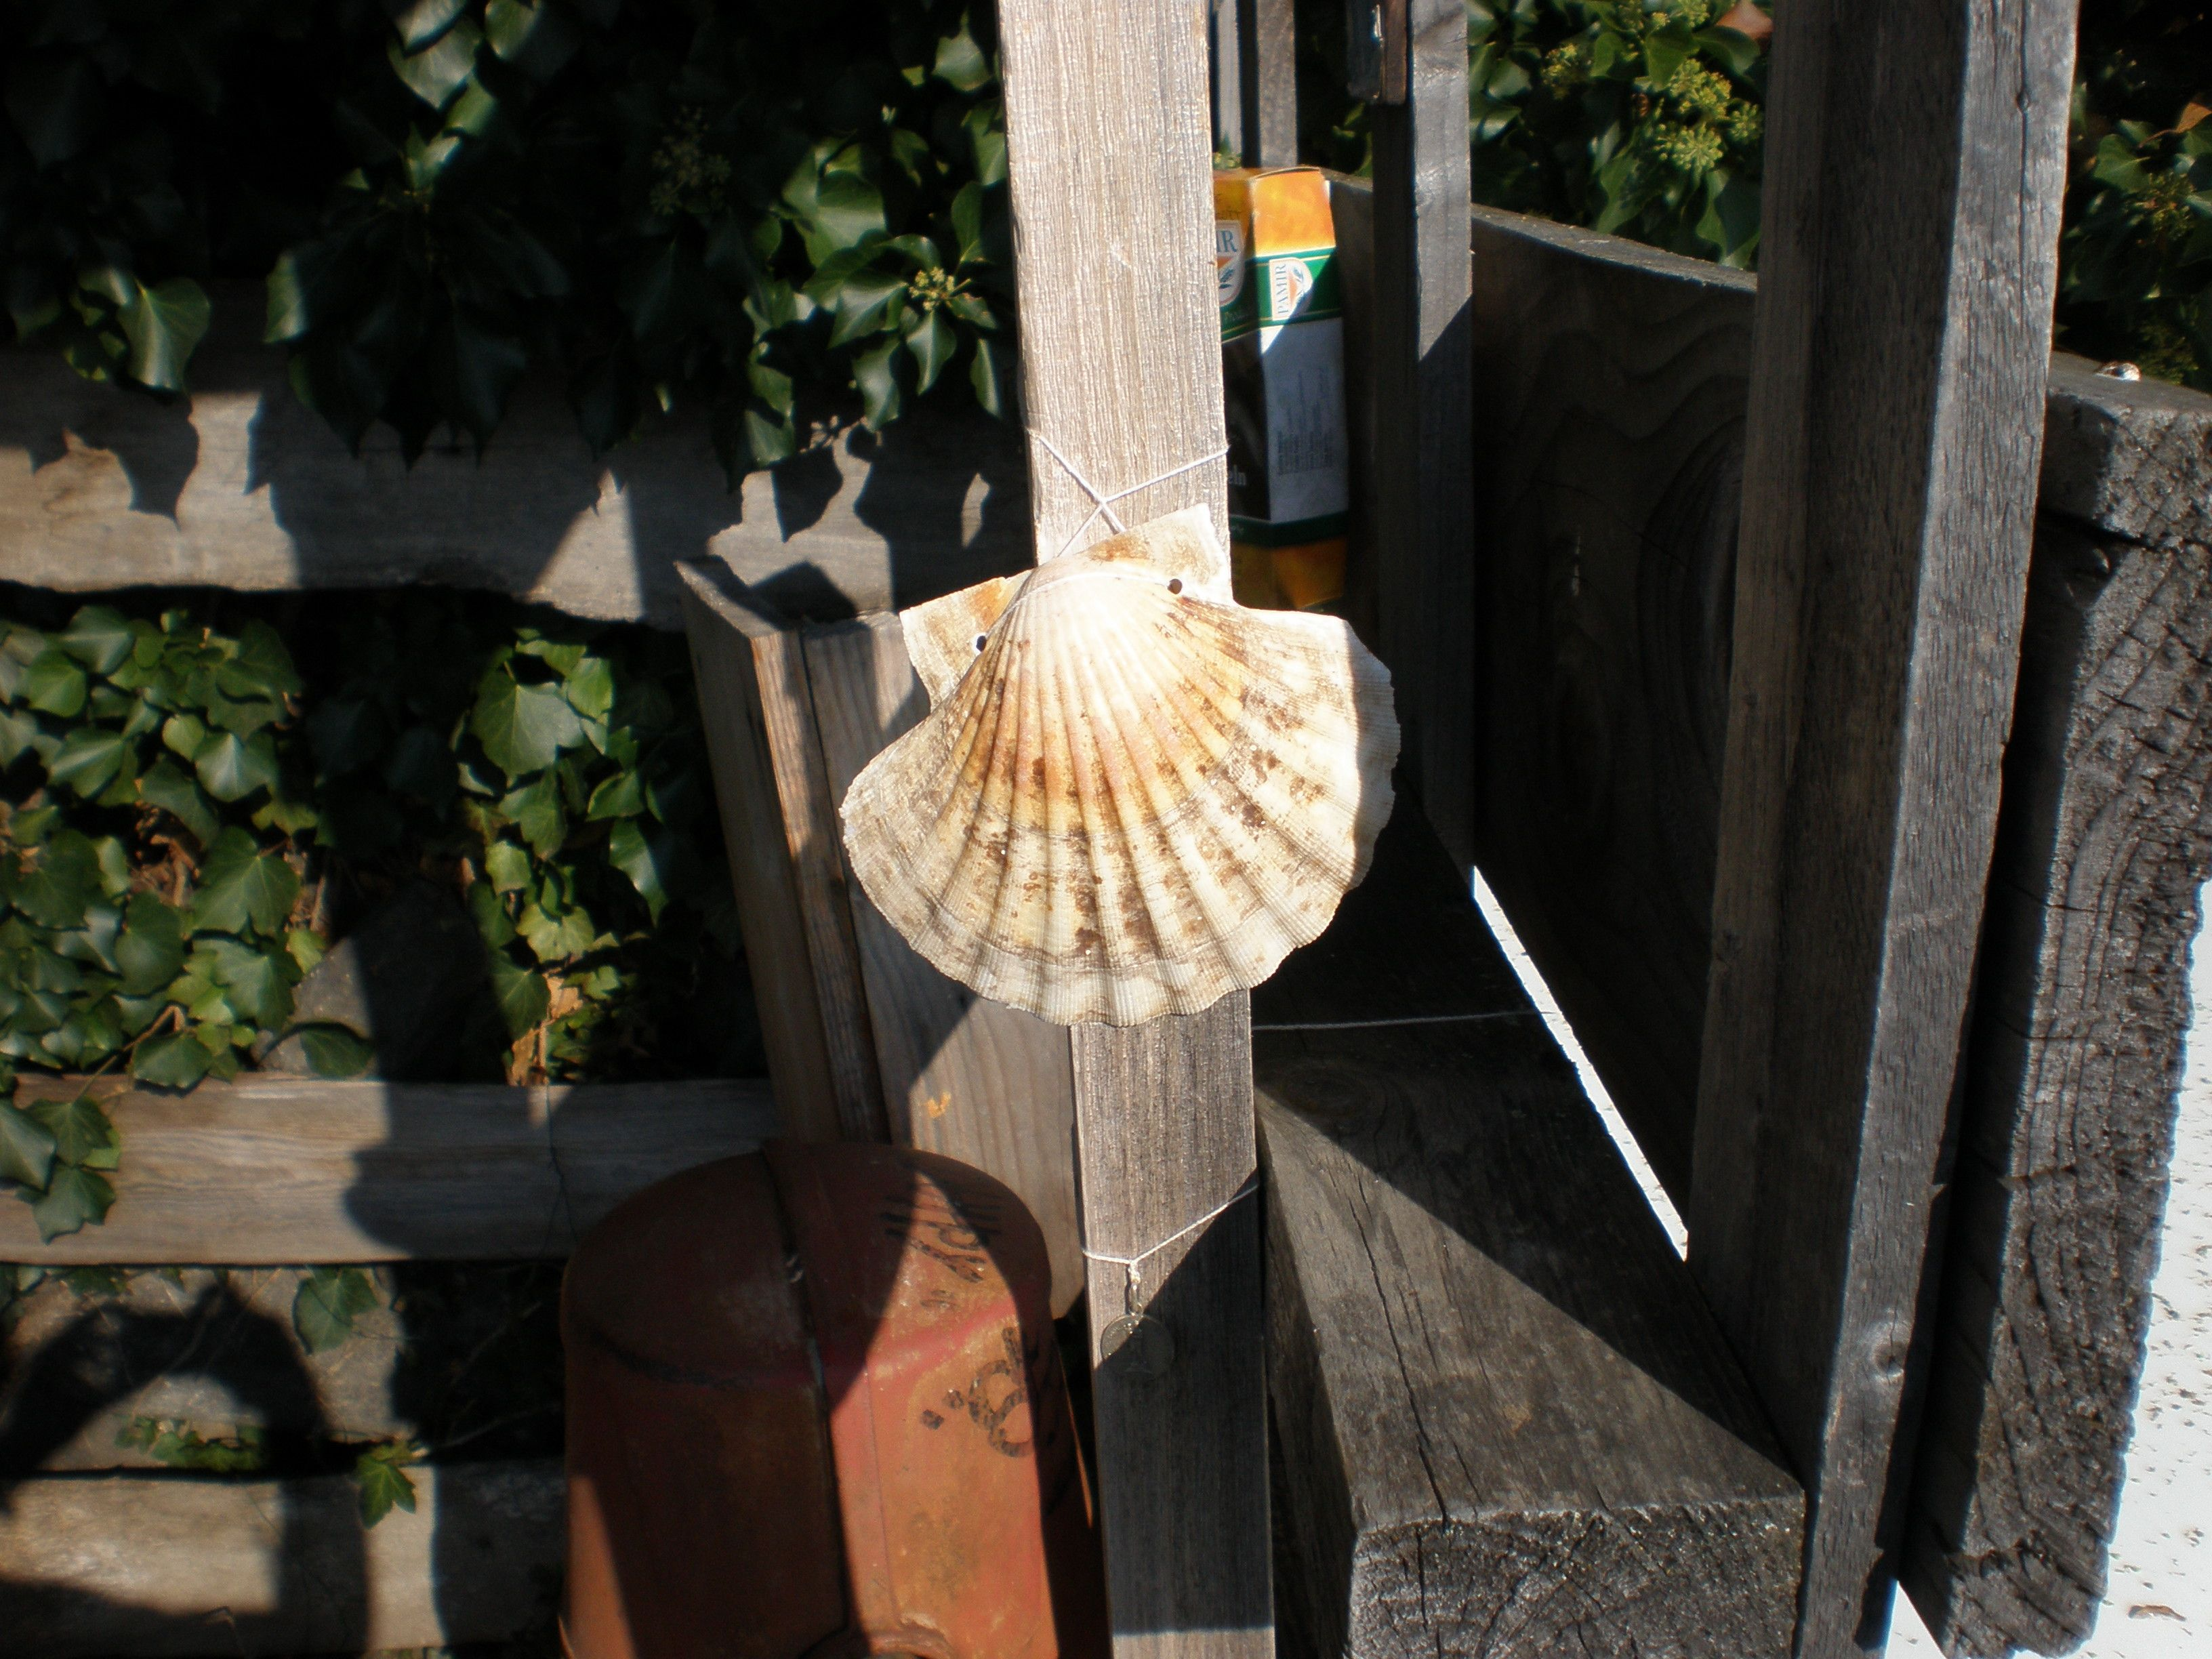 The Scallop Shell One Of The Iconic Symbols Of This Walk The